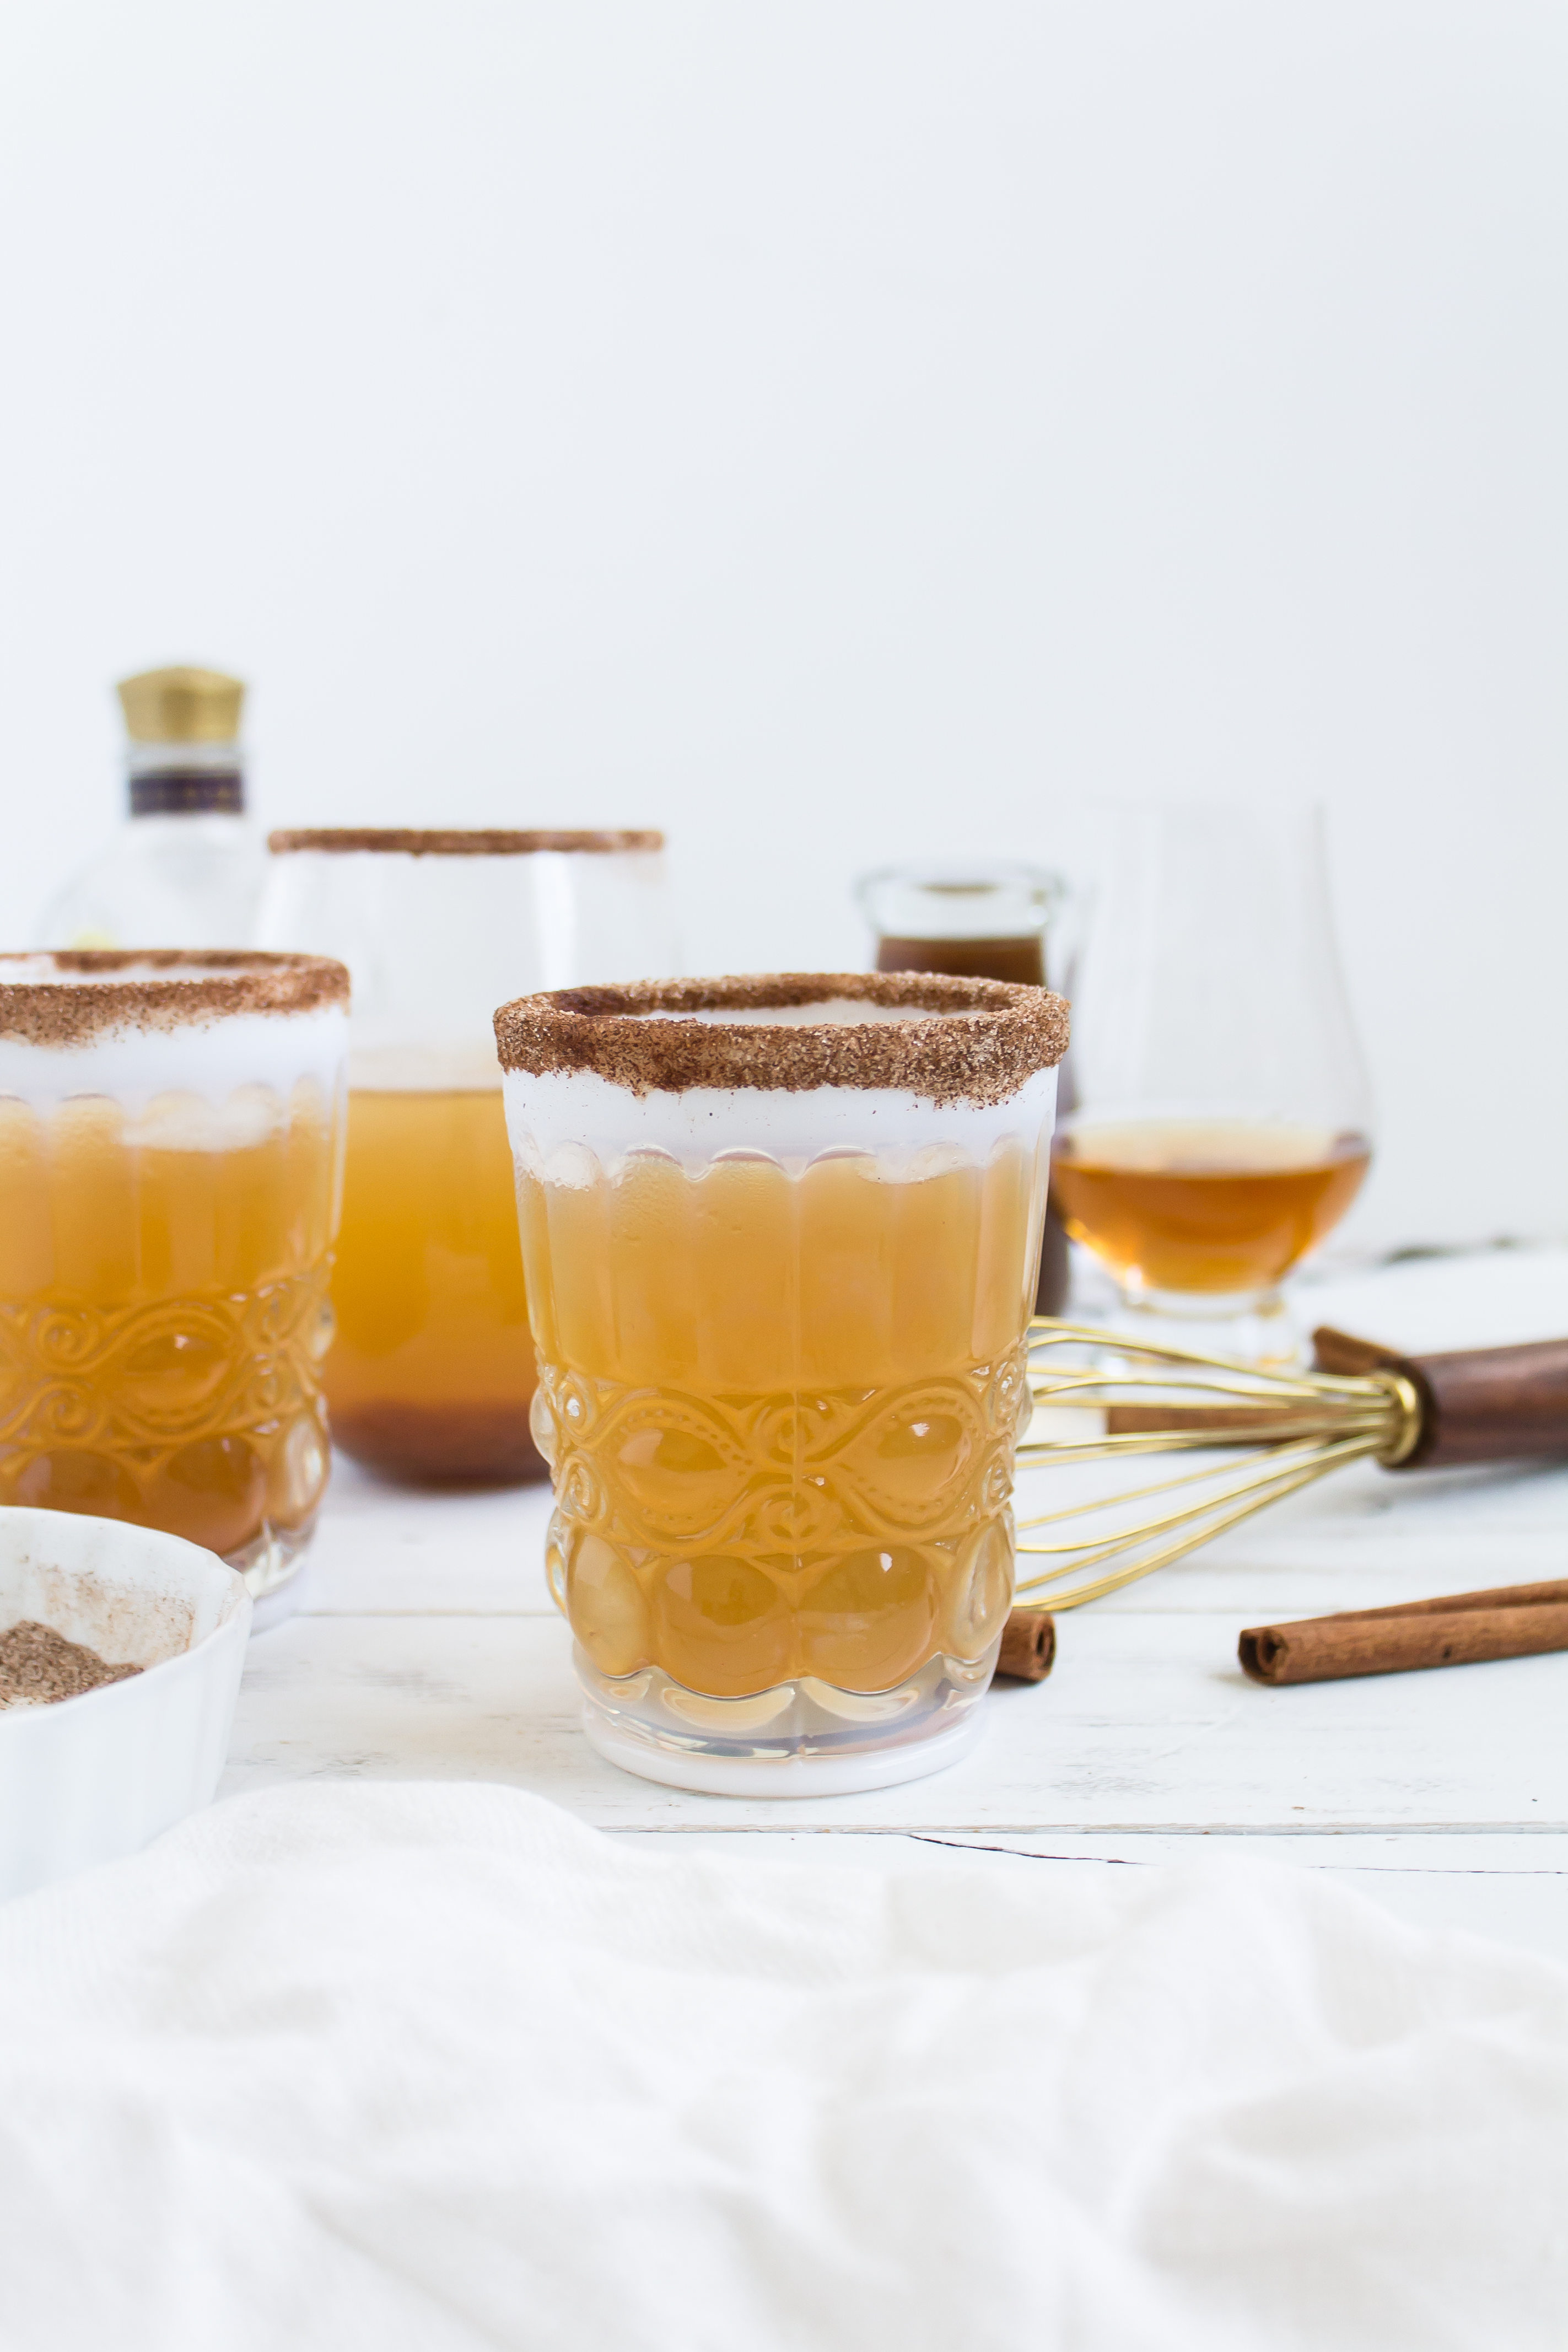 Foodie blogger Lexi of Glitter, Inc. shares a perfect fall cocktail recipe, and spin on a classic Kentucky Mule, combining homemade pumpkin ginger simple syrup, smooth bourbon, and spicy ginger beer, ideal for Halloween and Thanksgiving. | glitterinc.com | @glitterinc - Pumpkin Ginger Bourbon Punch Cocktail by North Carolina foodie blogger Glitter, Inc.